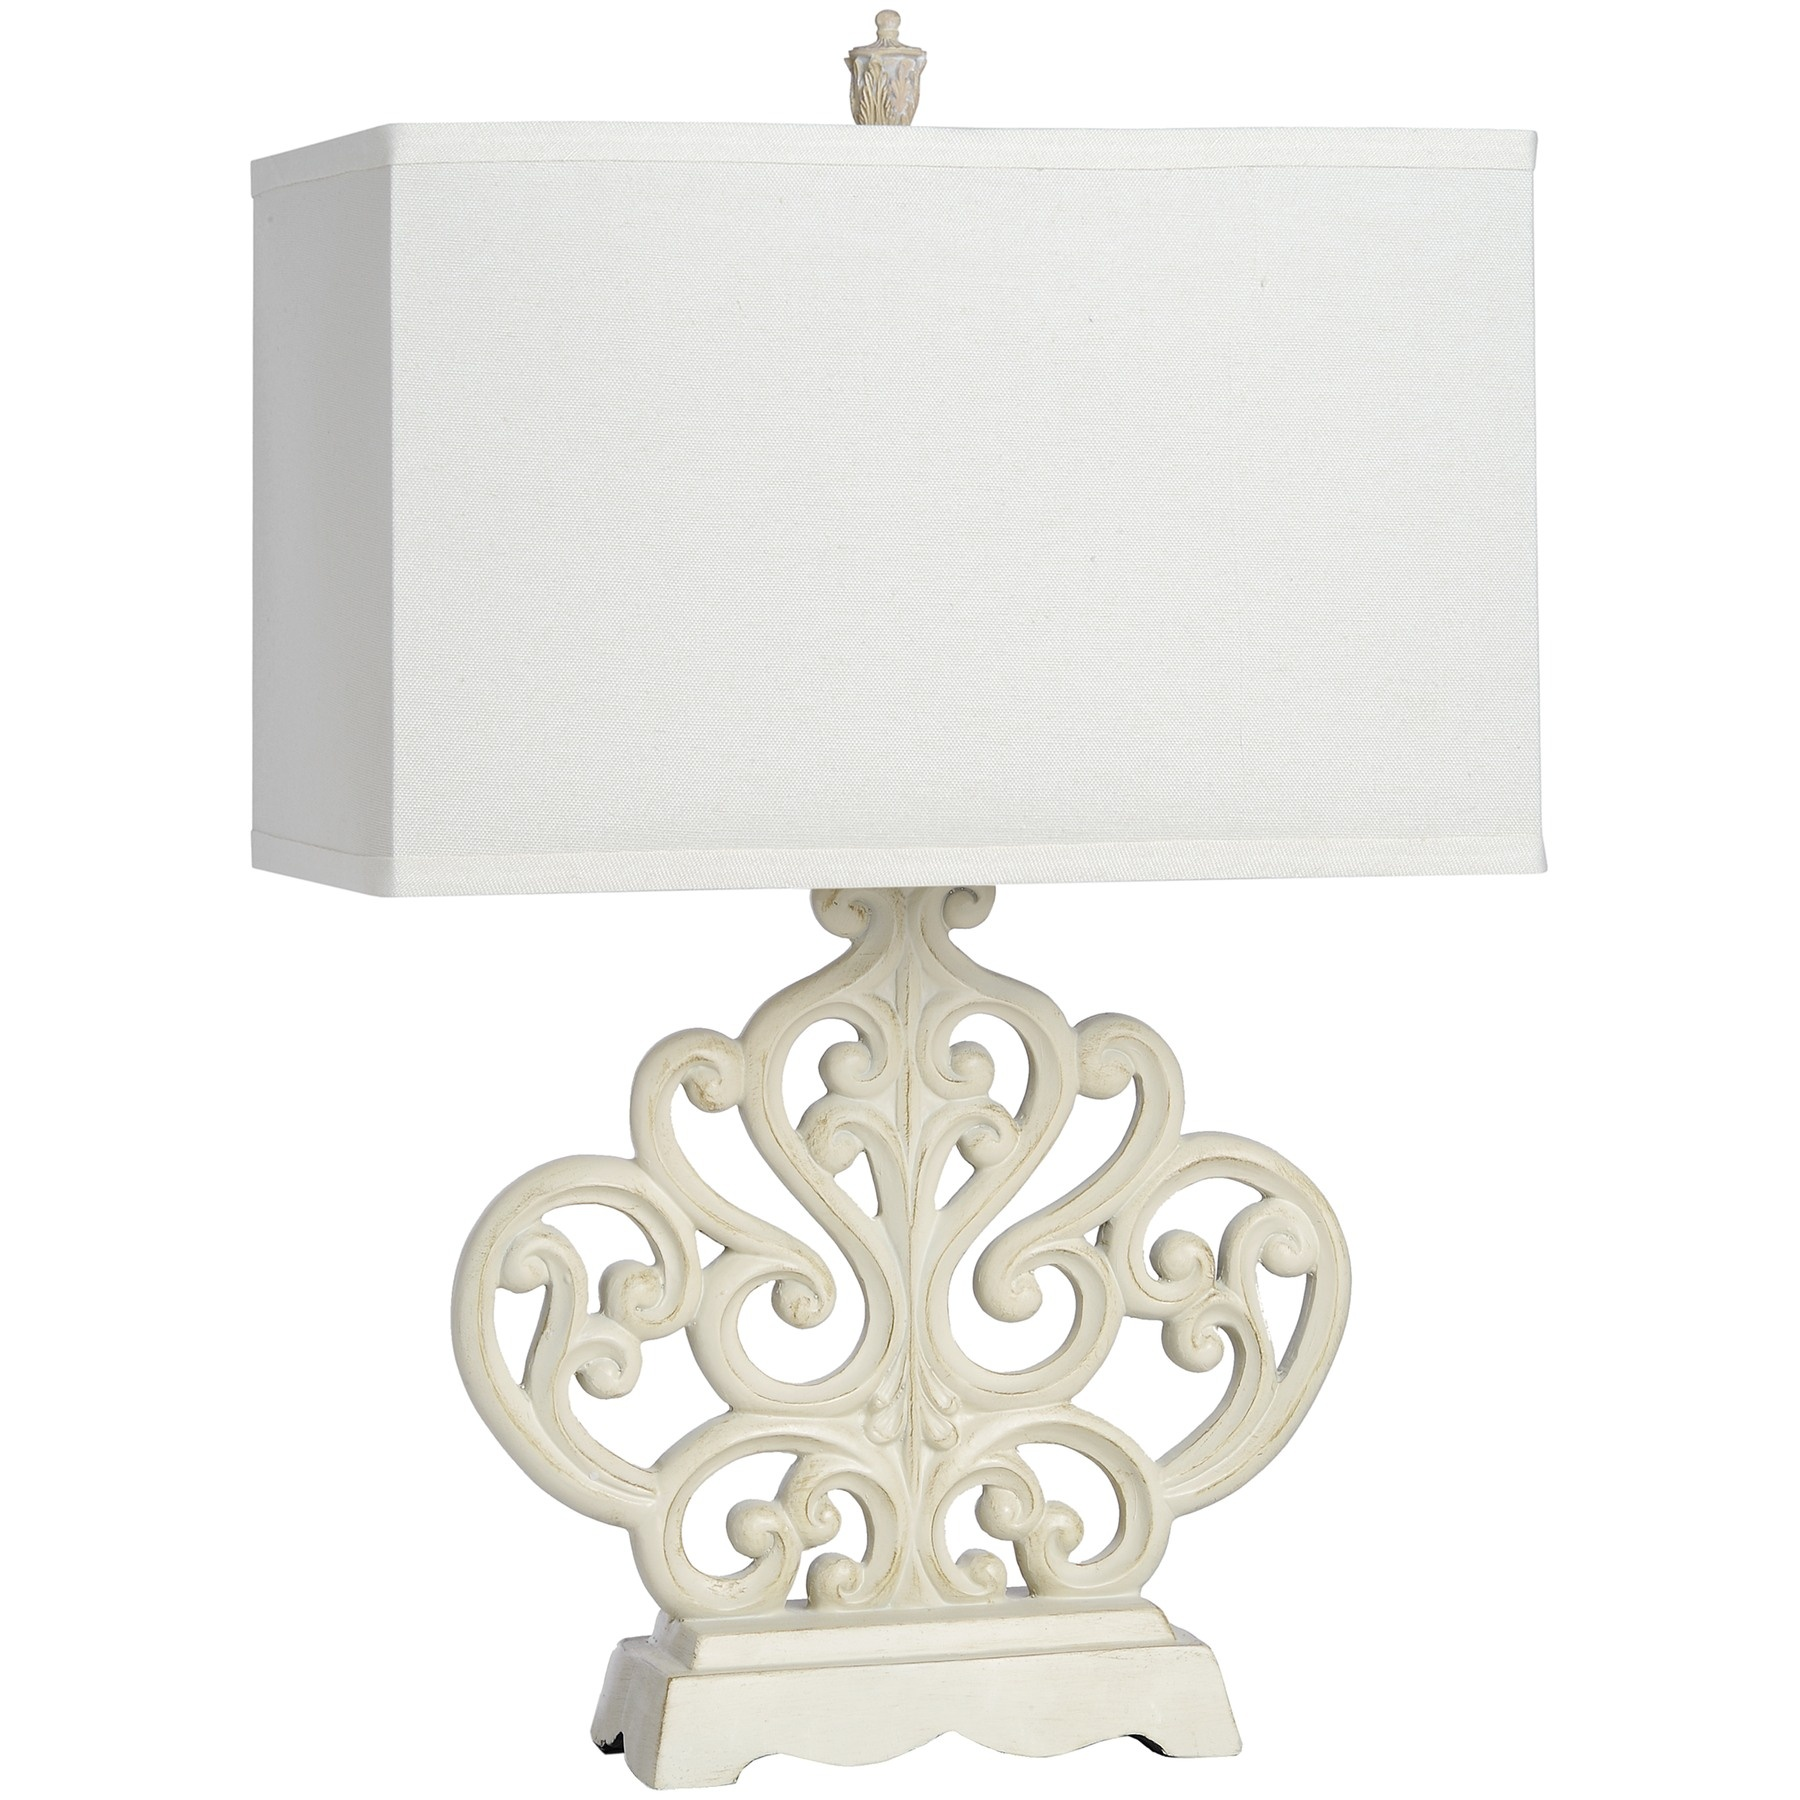 Buy french country table lamp rectangular swanky interiors french country table lamp rectangular mozeypictures Images